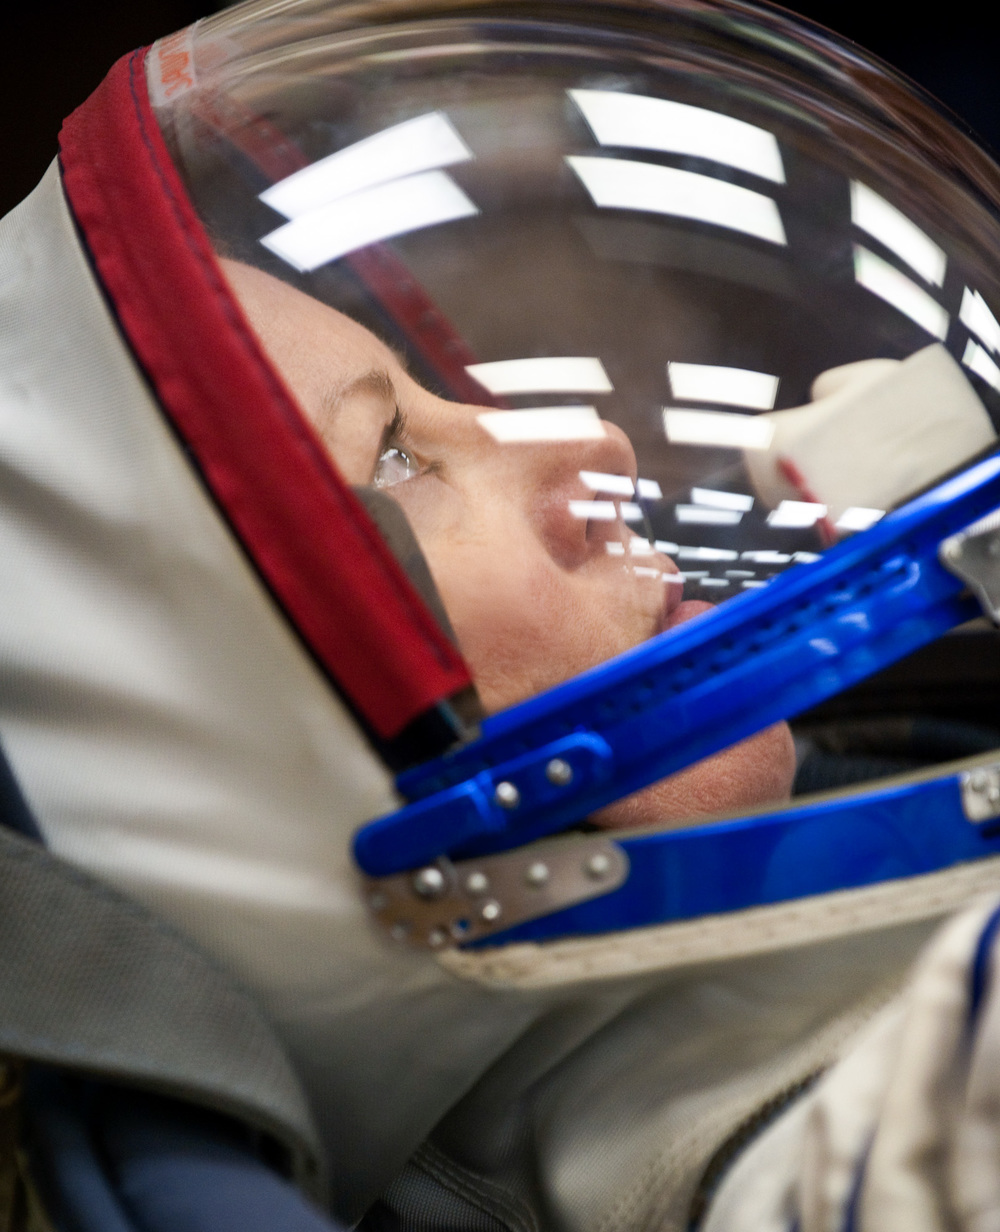 Expedition 23 NASA Flight Engineer Tracy Caldwell Dyson of the U.S. prepares to have her Russian Sokol suit pressure checked at the Baikonur Cosmodrome in Baikonur, Kazakhstan, Friday, April 2, 2010. Caldwell Dyson and fellow Expedition 23 crewmembers Soyuz Commander Alexander Skvortsov and Flight Engineer Mikhail Kornienko of Russia launched in their Soyuz TMA-18 rocket from the Baikonur Cosmodrome in Kazakhstan on Friday, April 2, 2010. (NASA/Carla Cioffi)